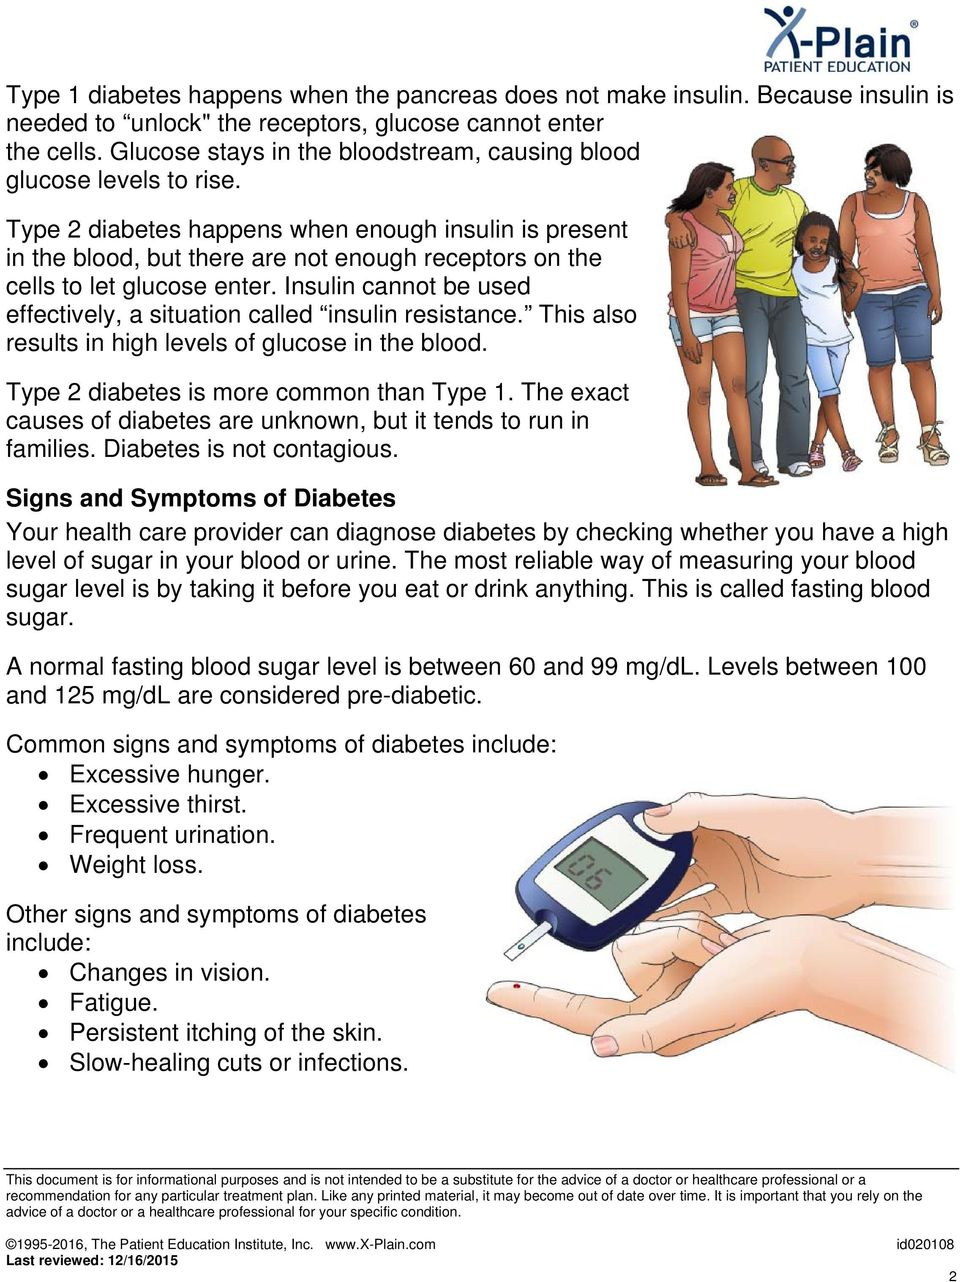 Type 2 diabetes happens when enough insulin is present in the blood, but there are not enough receptors on the cells to let glucose enter.